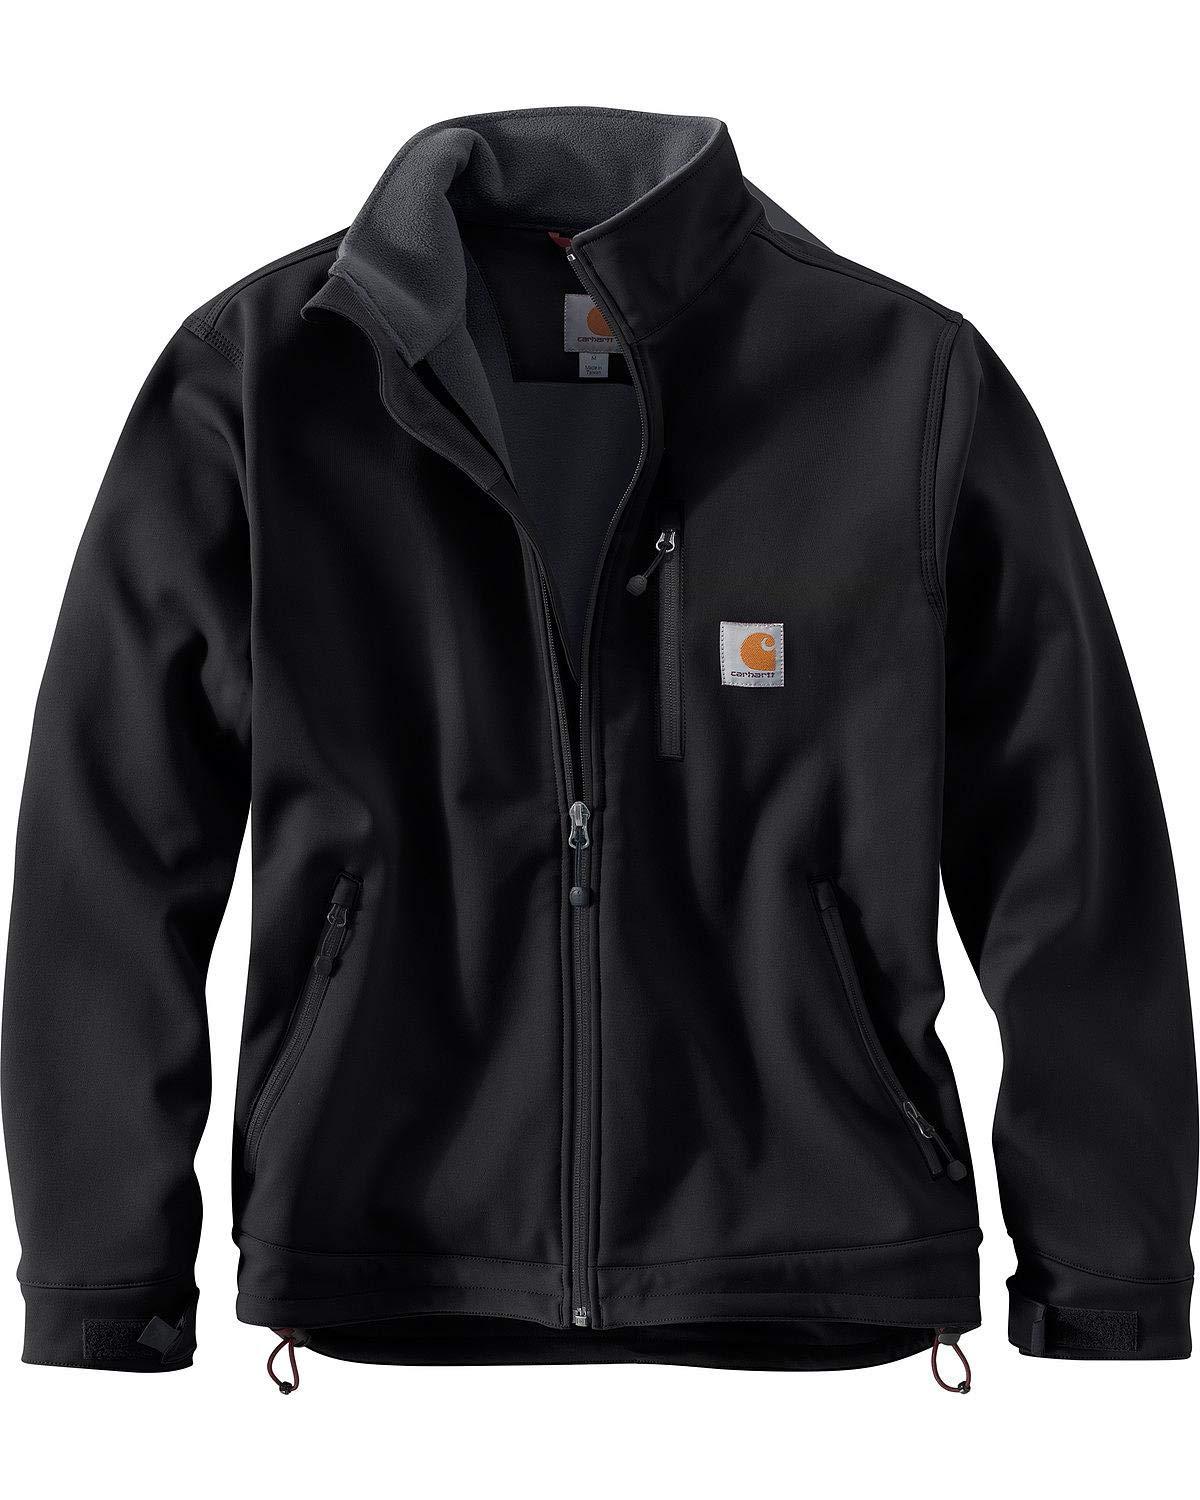 Carhartt Men's Big & Tall Crowley Jacket, Black, Large/Tall by Carhartt